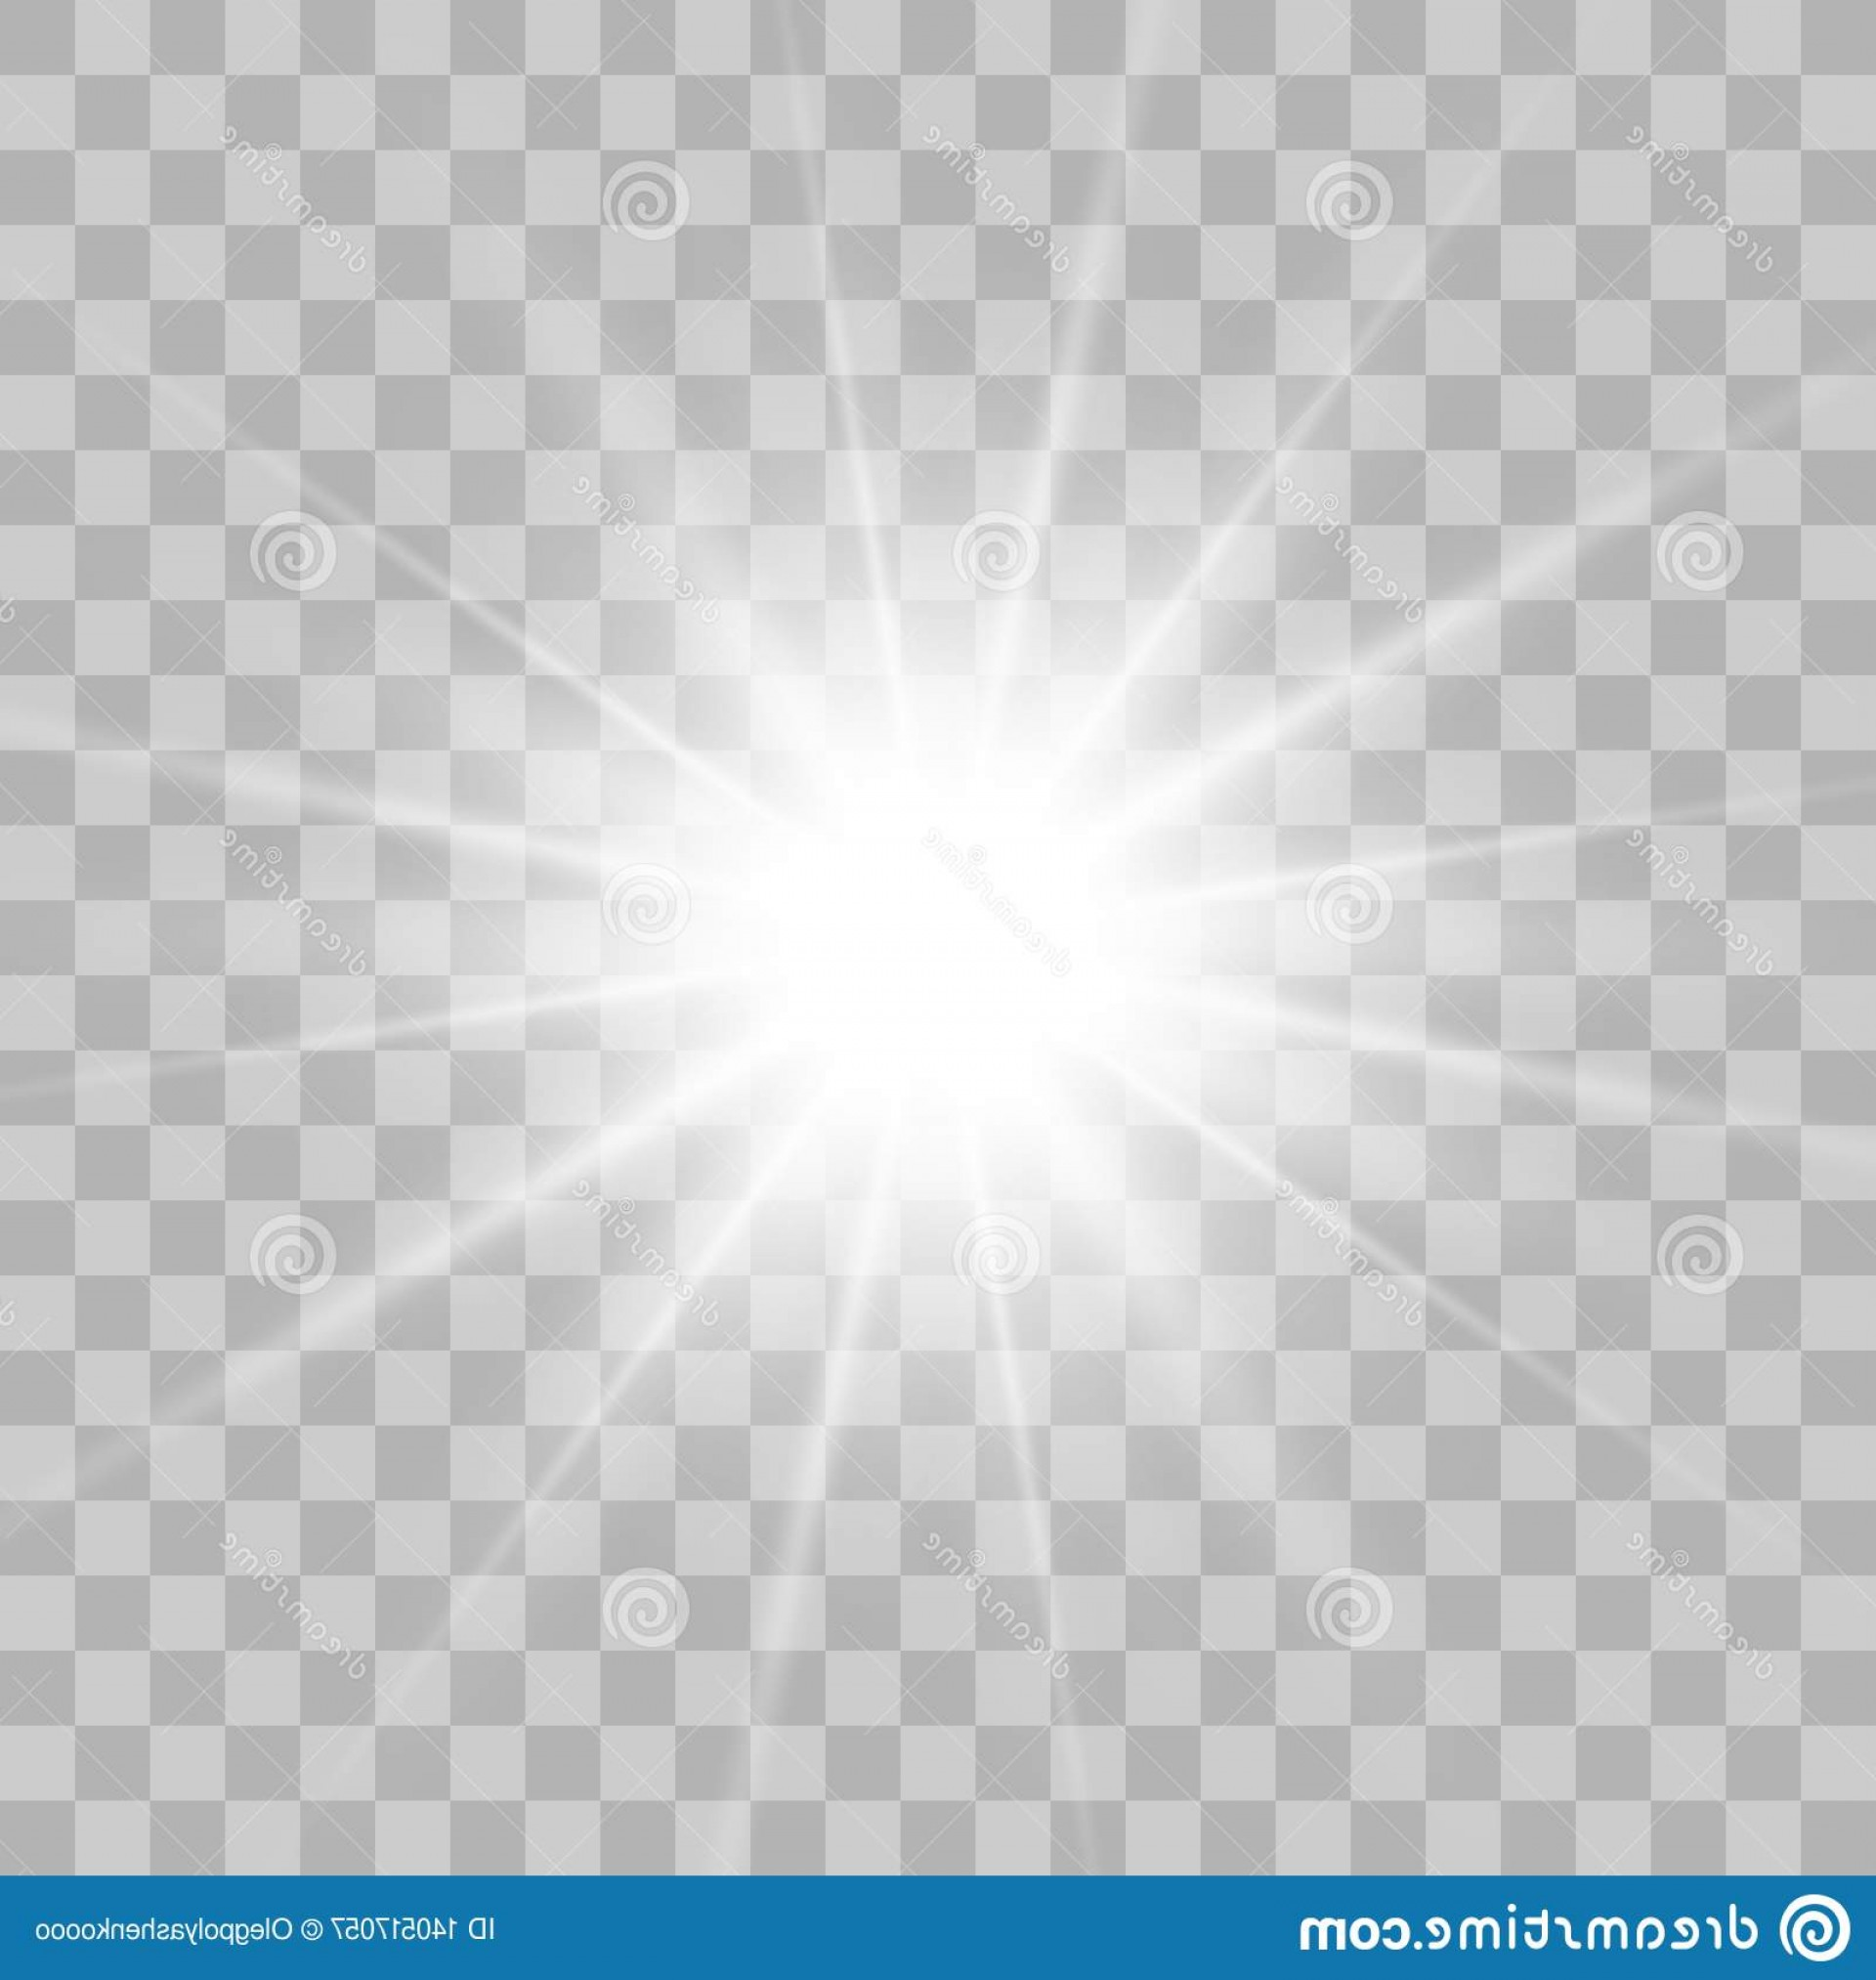 Sparkle Burst Vector: Glow Light Burst Explosion Transparent Vector Illustration Cool Effect Decoration Ray Sparkles Bright Star Shine Gradient Image